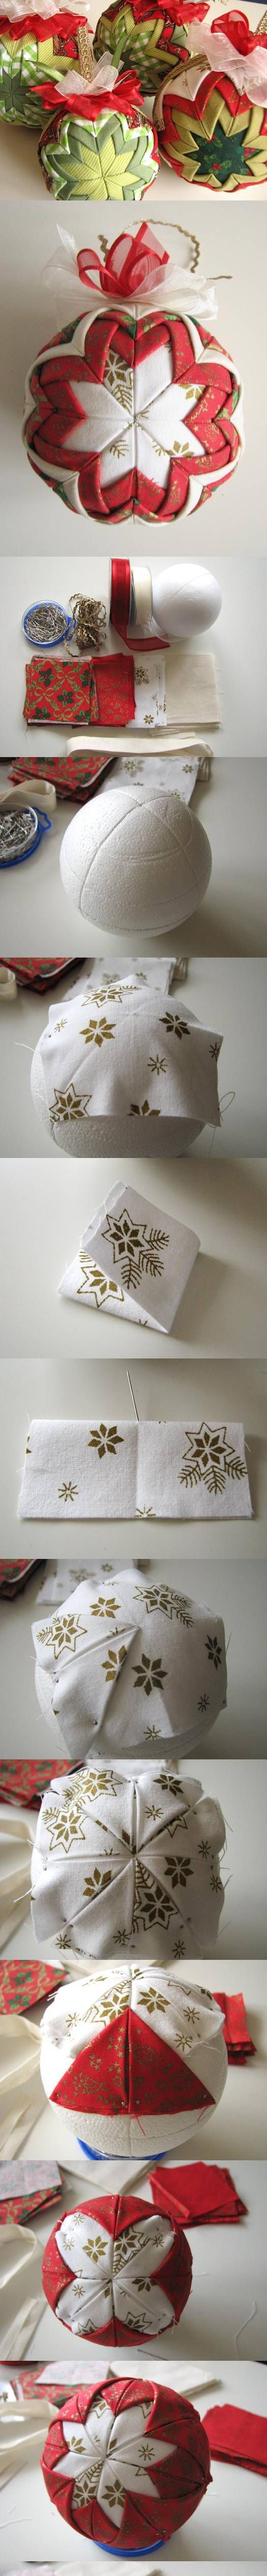 Pinned onto Christmas Board in DIY Holidays Category